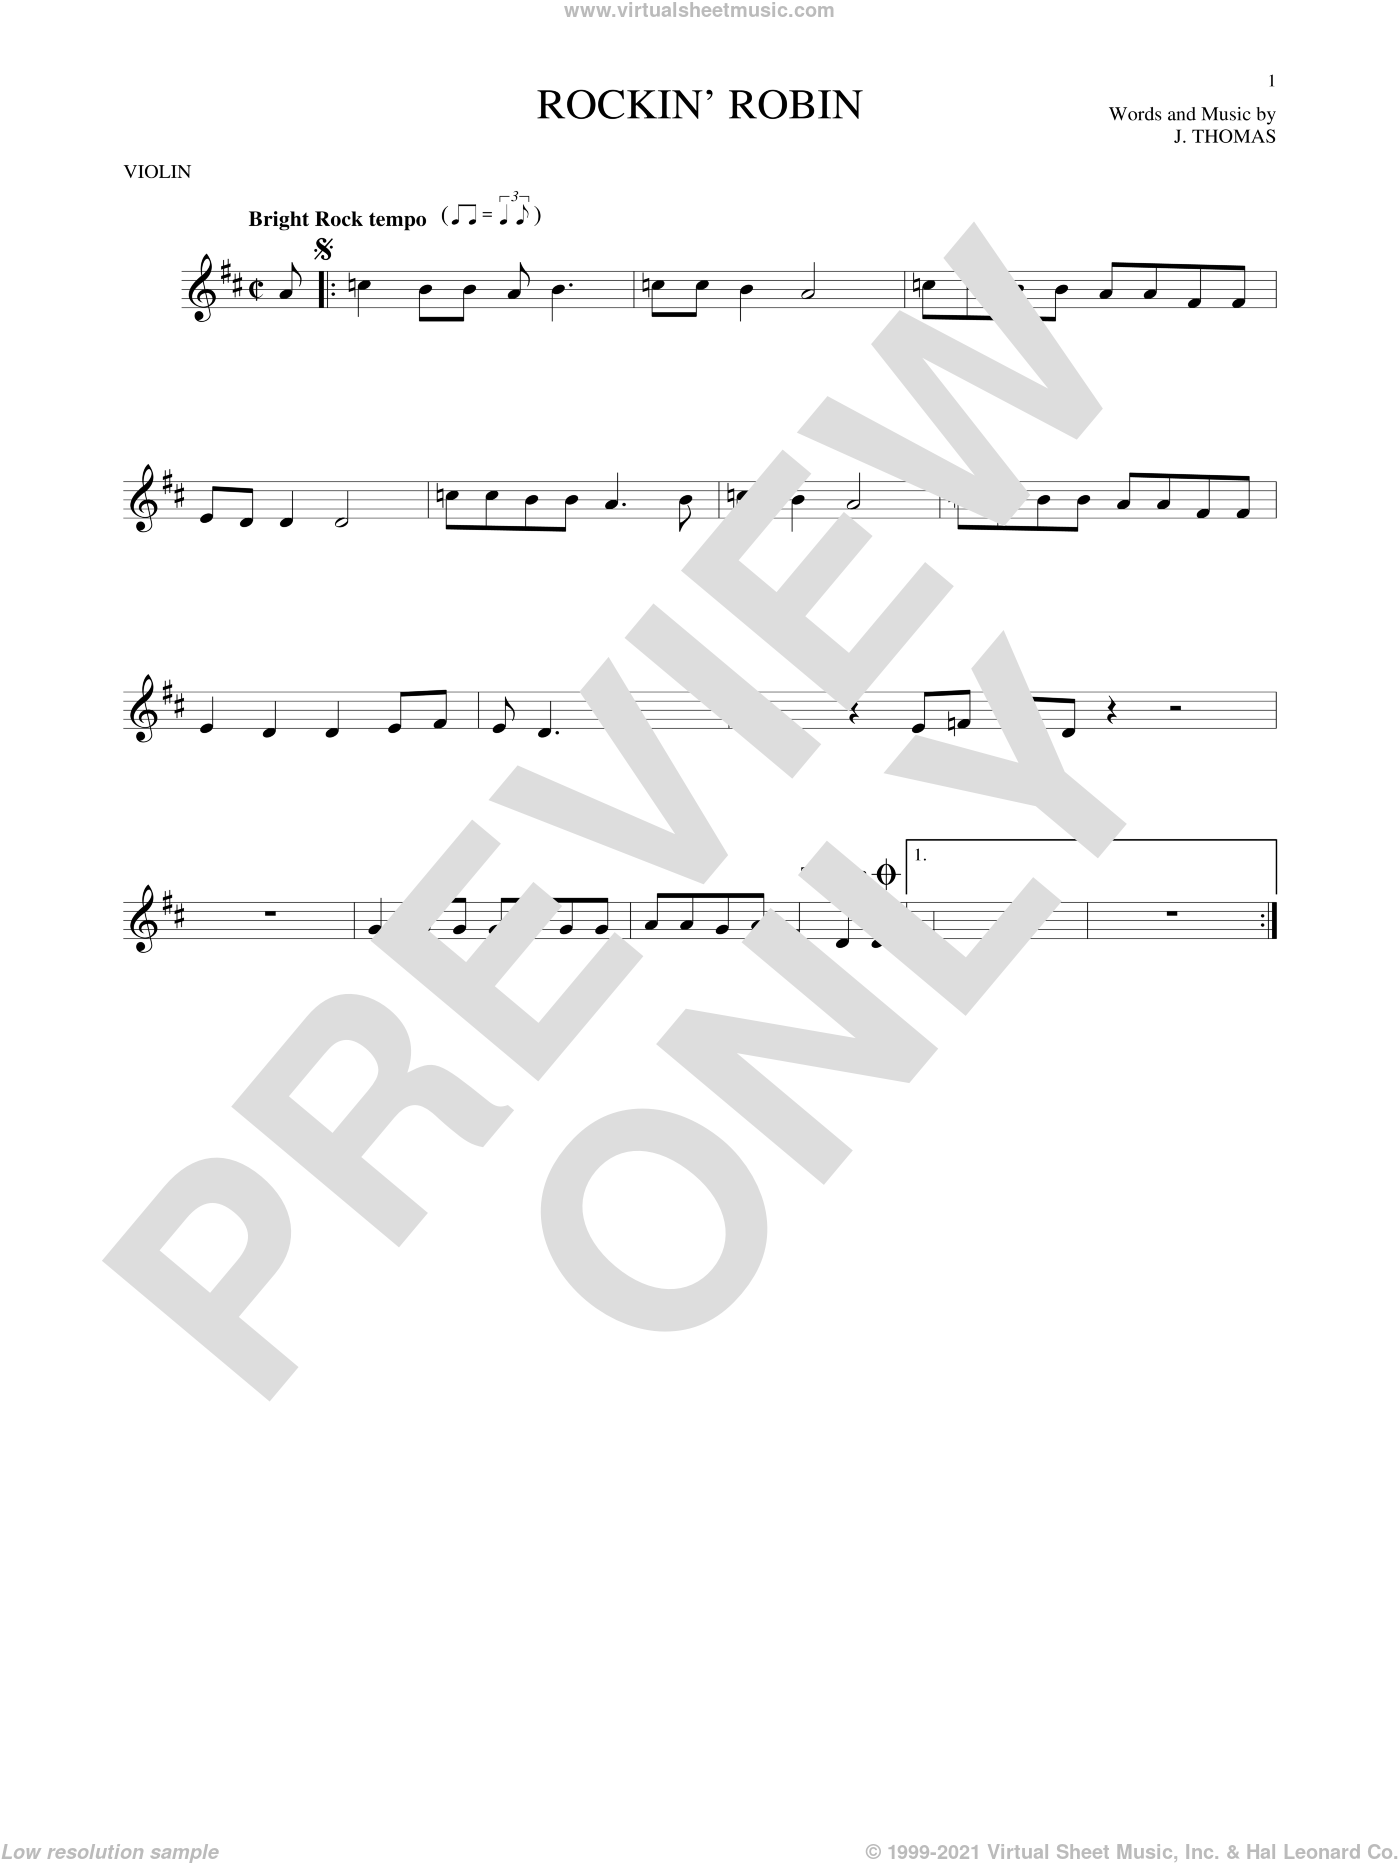 Rockin' Robin sheet music for violin solo by Thomas Jimmie, Bobby Day and Michael Jackson, intermediate skill level